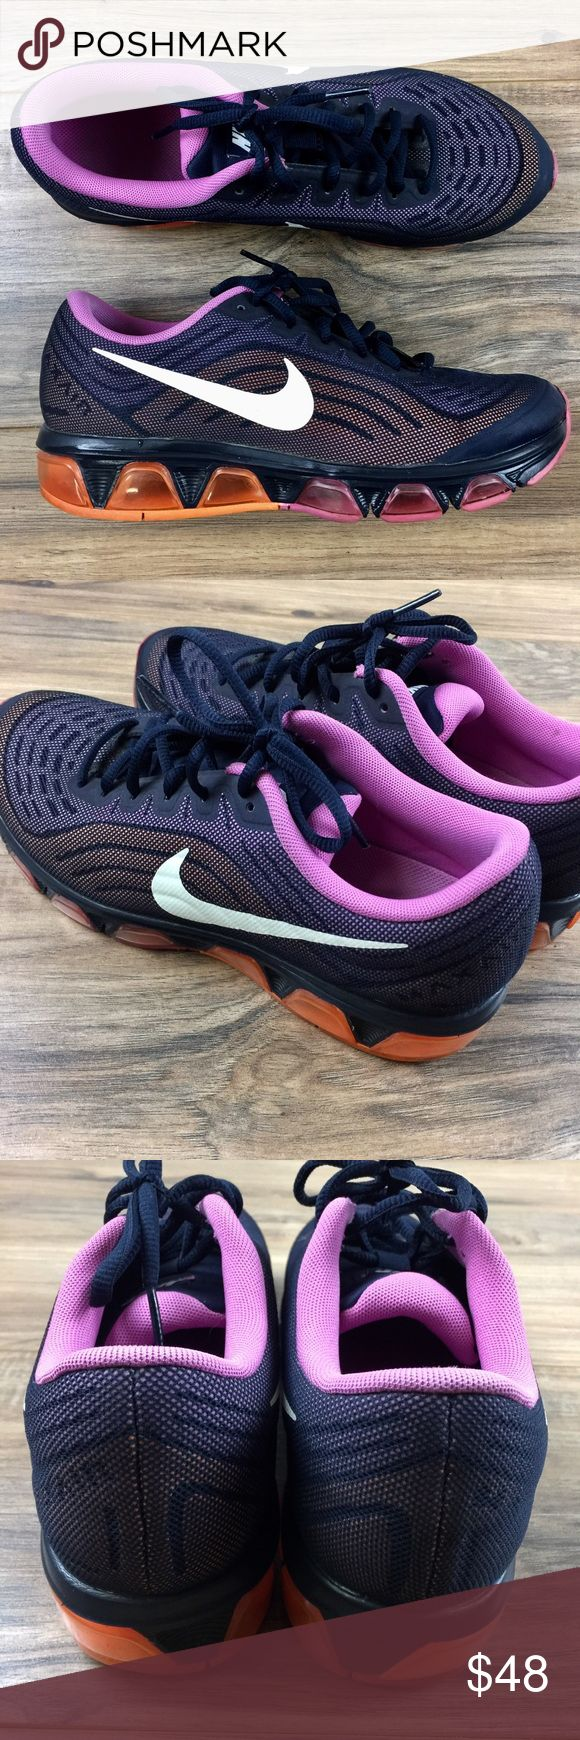 Women's Nike Running Shoes 8.5 Nike running shoes. Air max tail wind 6. Lightly used great for the gym! Women's size 8.5. No rips or stains great condition! Nike Shoes Athletic Shoes